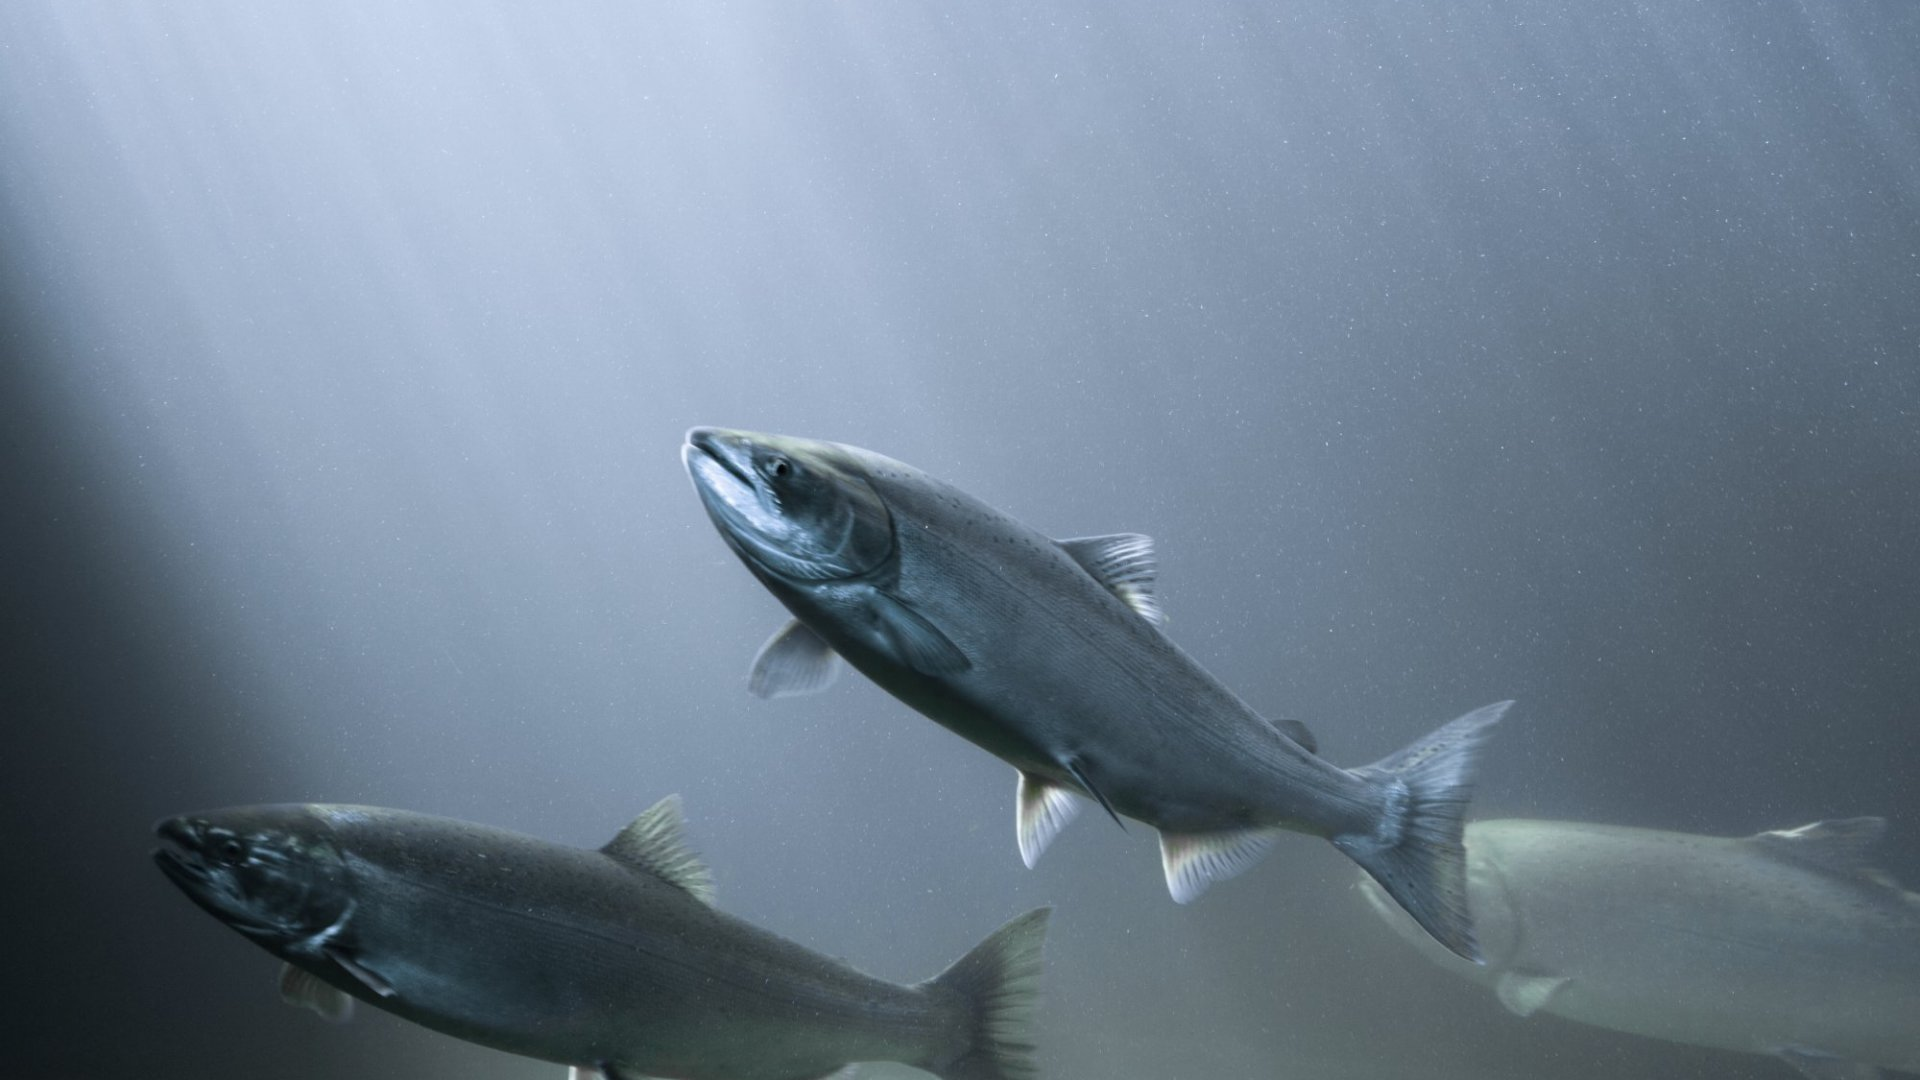 1 Surprising Lesson About Failure You Can Learn From Salmon (Yes, the Fish)